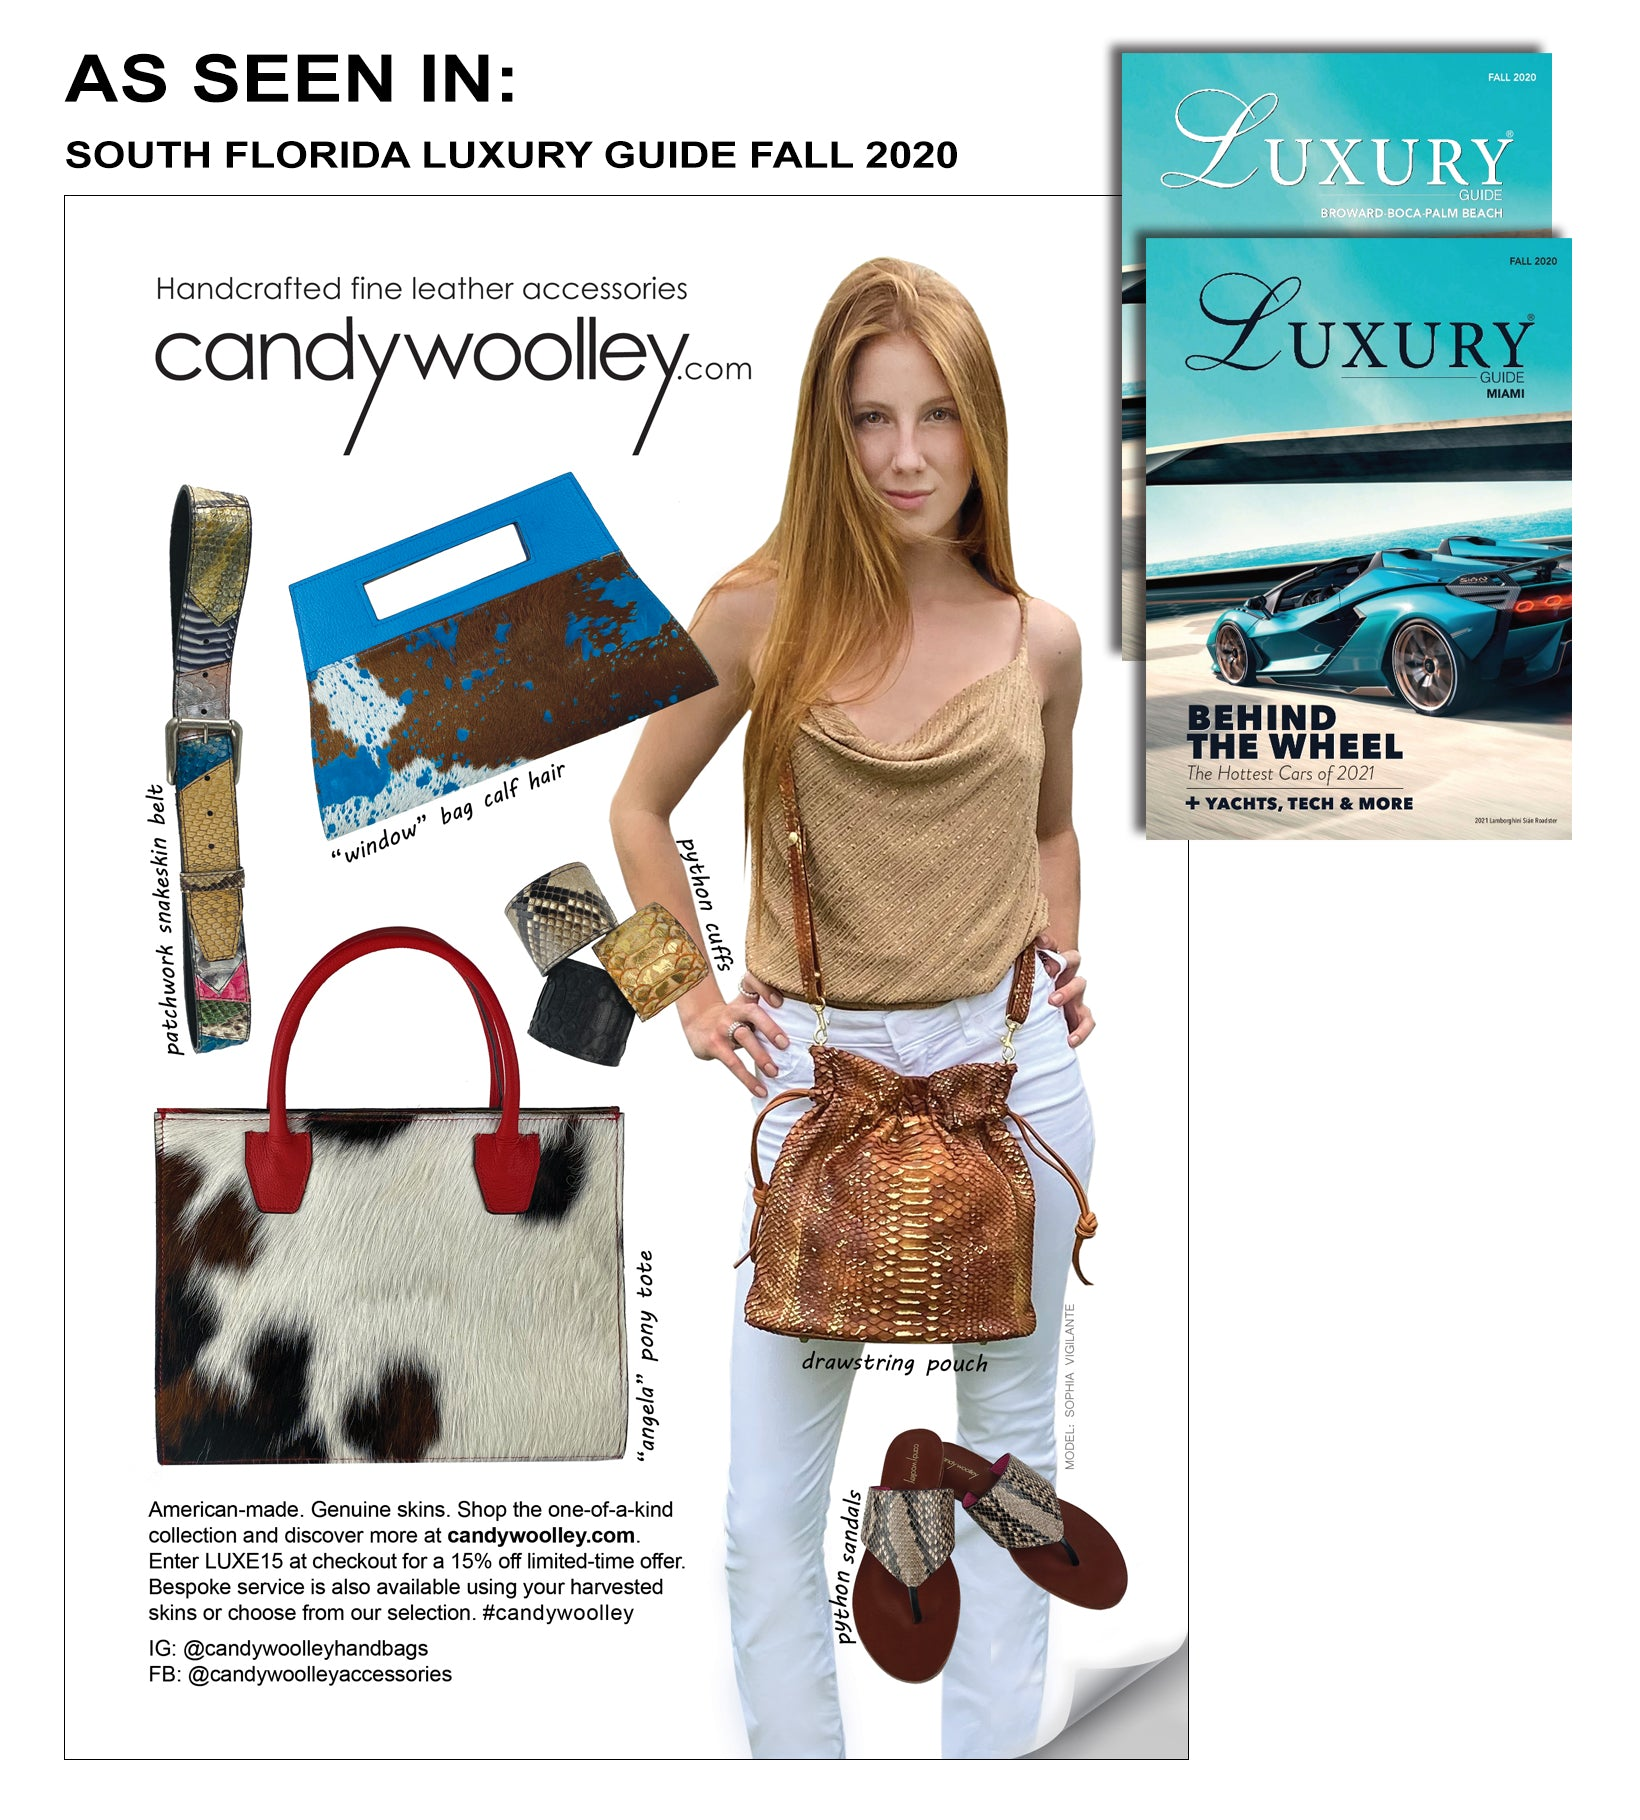 FEATURED ON SOUTH FLORIDA LUXURY GUIDE - FALL 2020